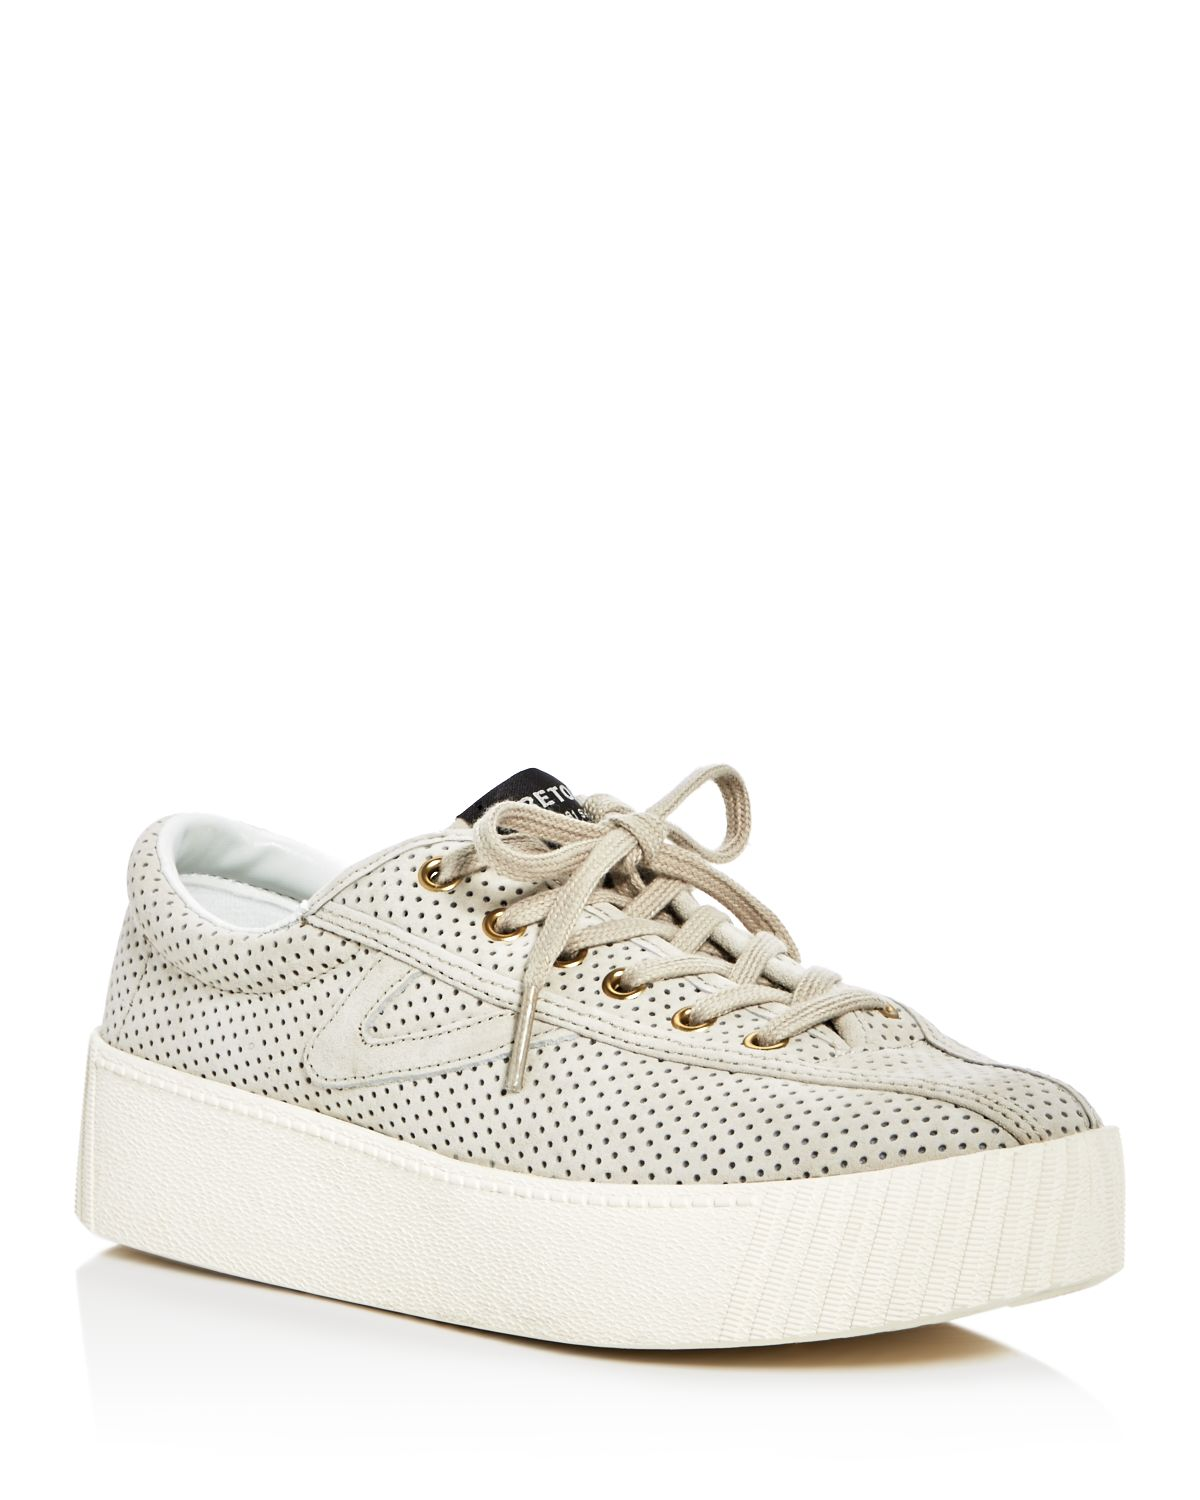 Tretorn Women's Nylite Bold Perforated Nubuck Leather Lace Up Platform Sneakers